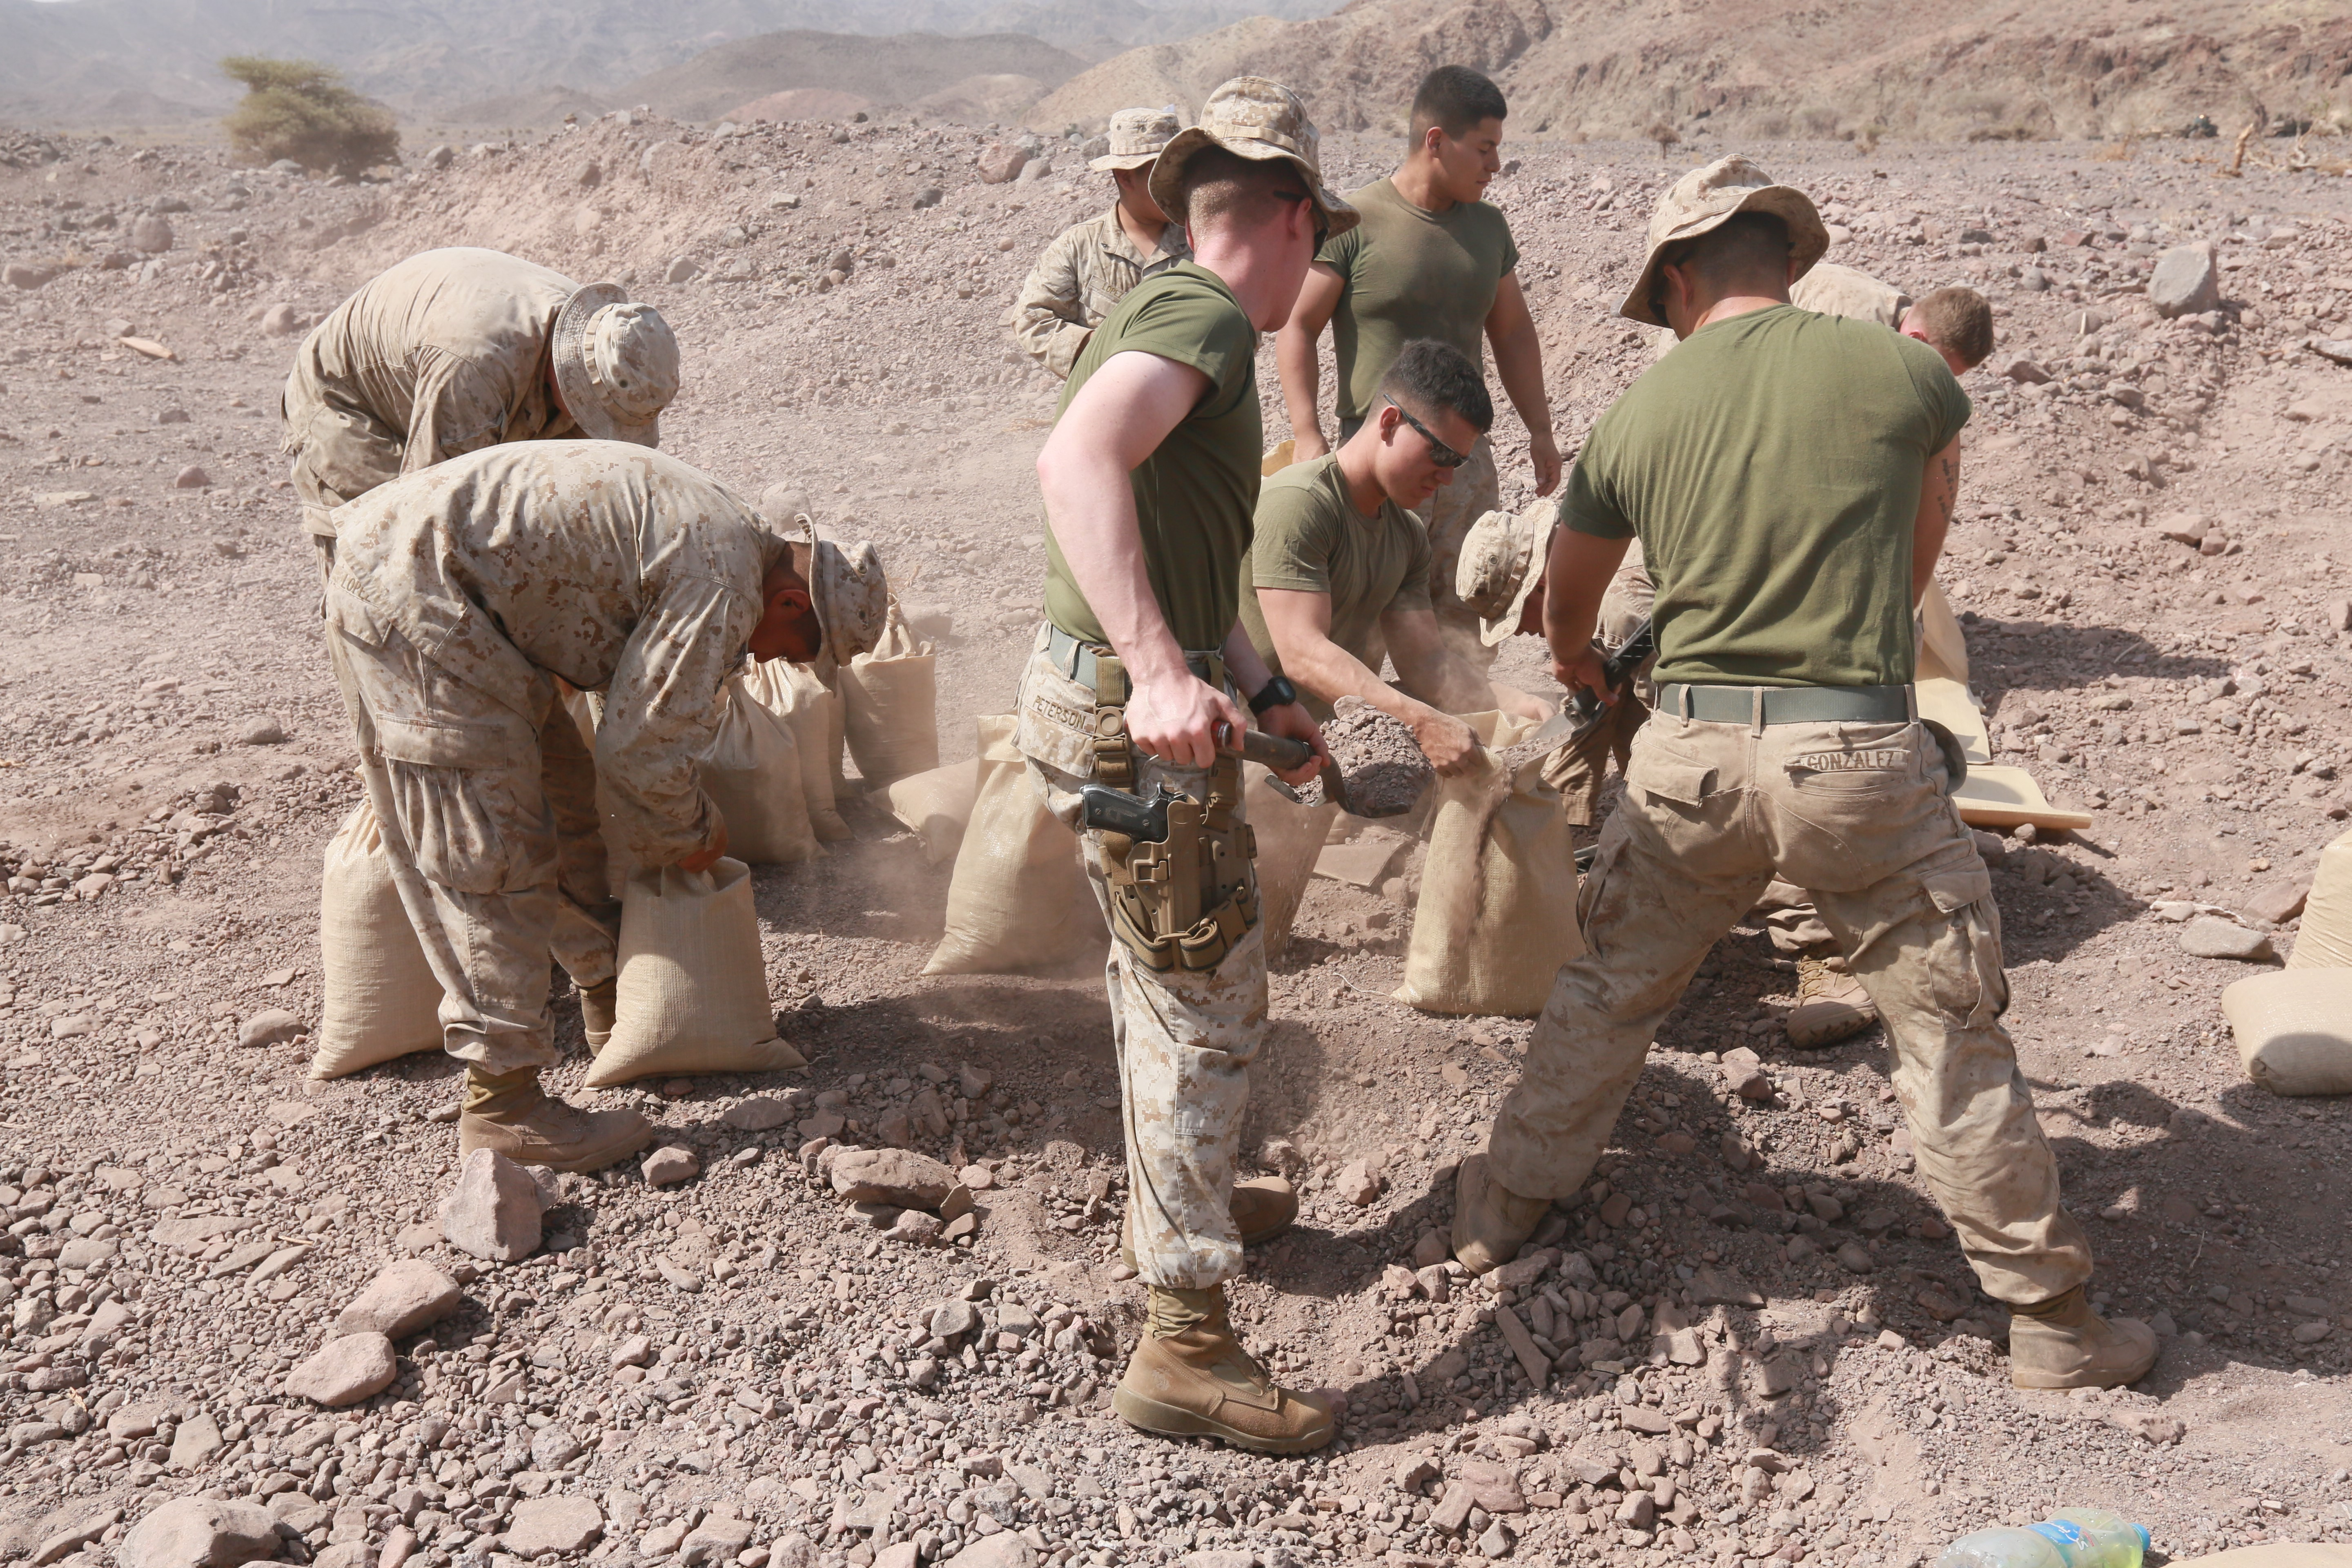 ARTA BEACH, Djibouti (July 22, 2015) U.S. Marines with the 15th Marine Expeditionary Unit fill sand bags to construct an entry control point at a cantonment area ashore during sustainment training. Elements of the 15th Marine Expeditionary Unit are ashore in Djibouti for sustainment training to maintain and enhance the skills they developed during their pre-deployment training period.  The 15th MEU is currently deployed in support of maritime security operations and theater security cooperation efforts in the U.S. 5th and 6th Fleet areas of operation. (U.S. Marine Corps photo by Sgt. Steve H. Lopez/Released)